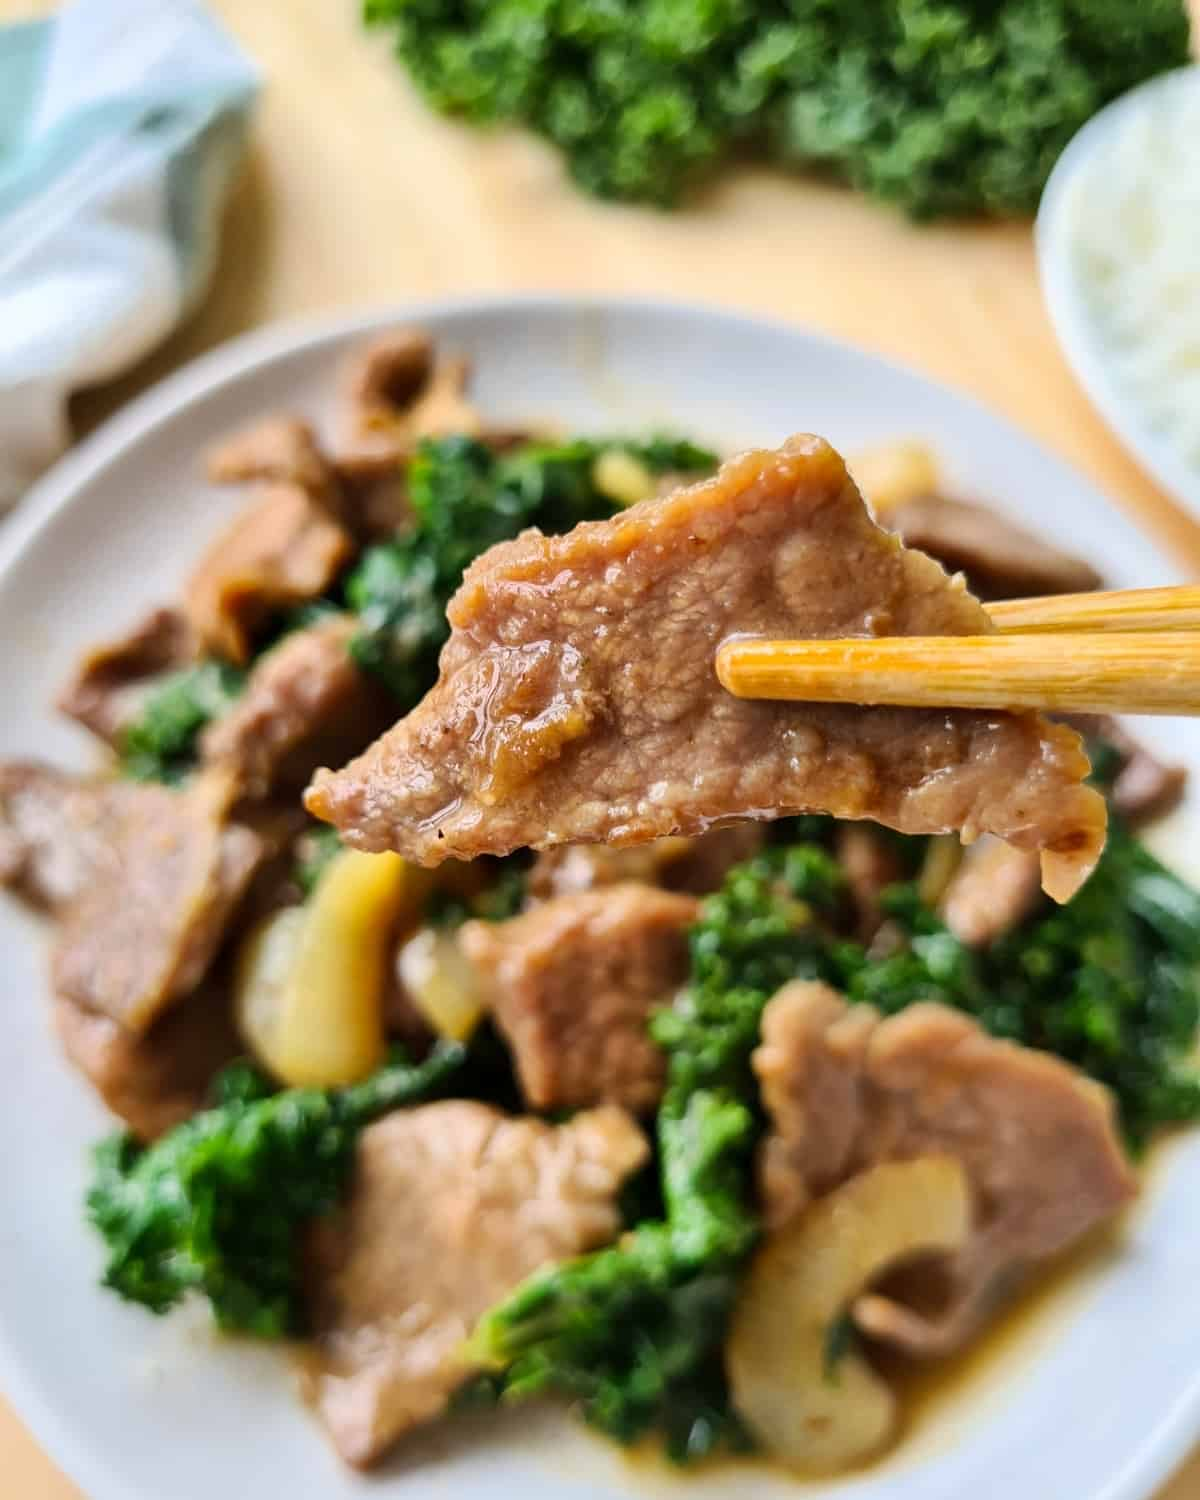 close up image of a piece of cooked, velvety beef slice held up by chopsticks